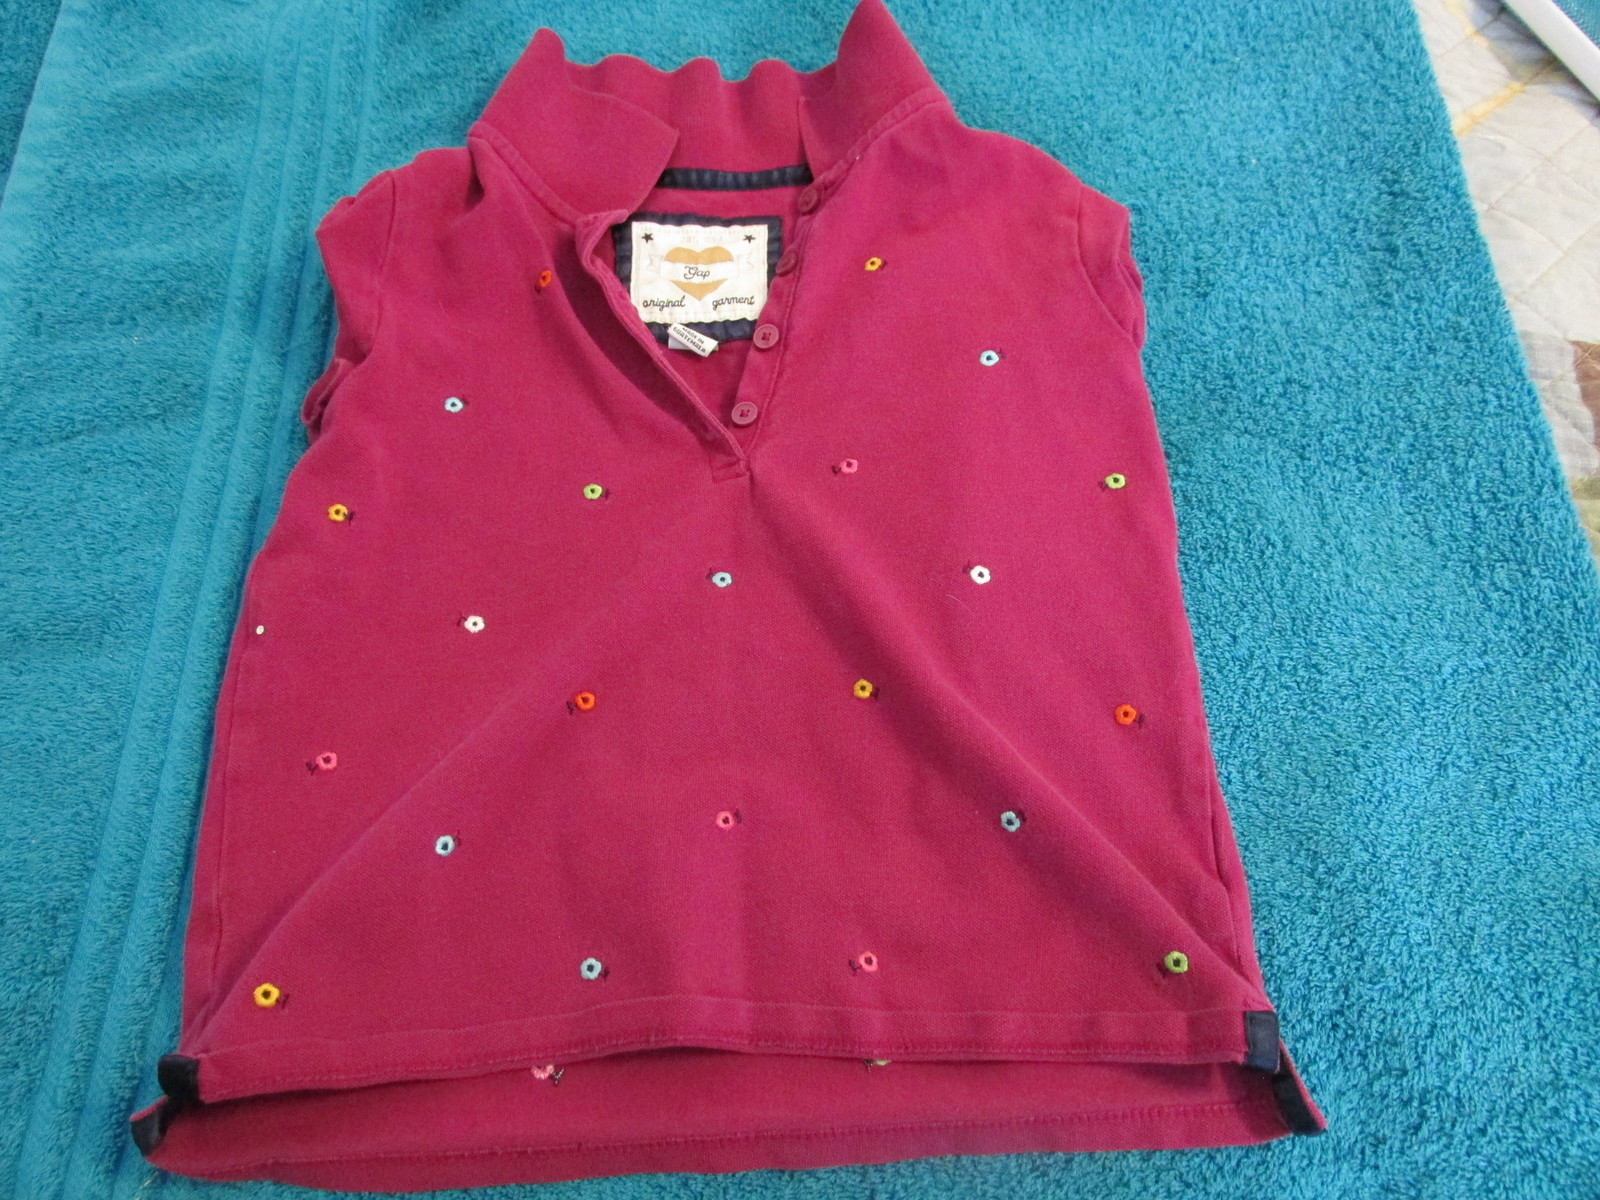 Gap Kids Girl's Pink T-shirt Top Small Embroidered